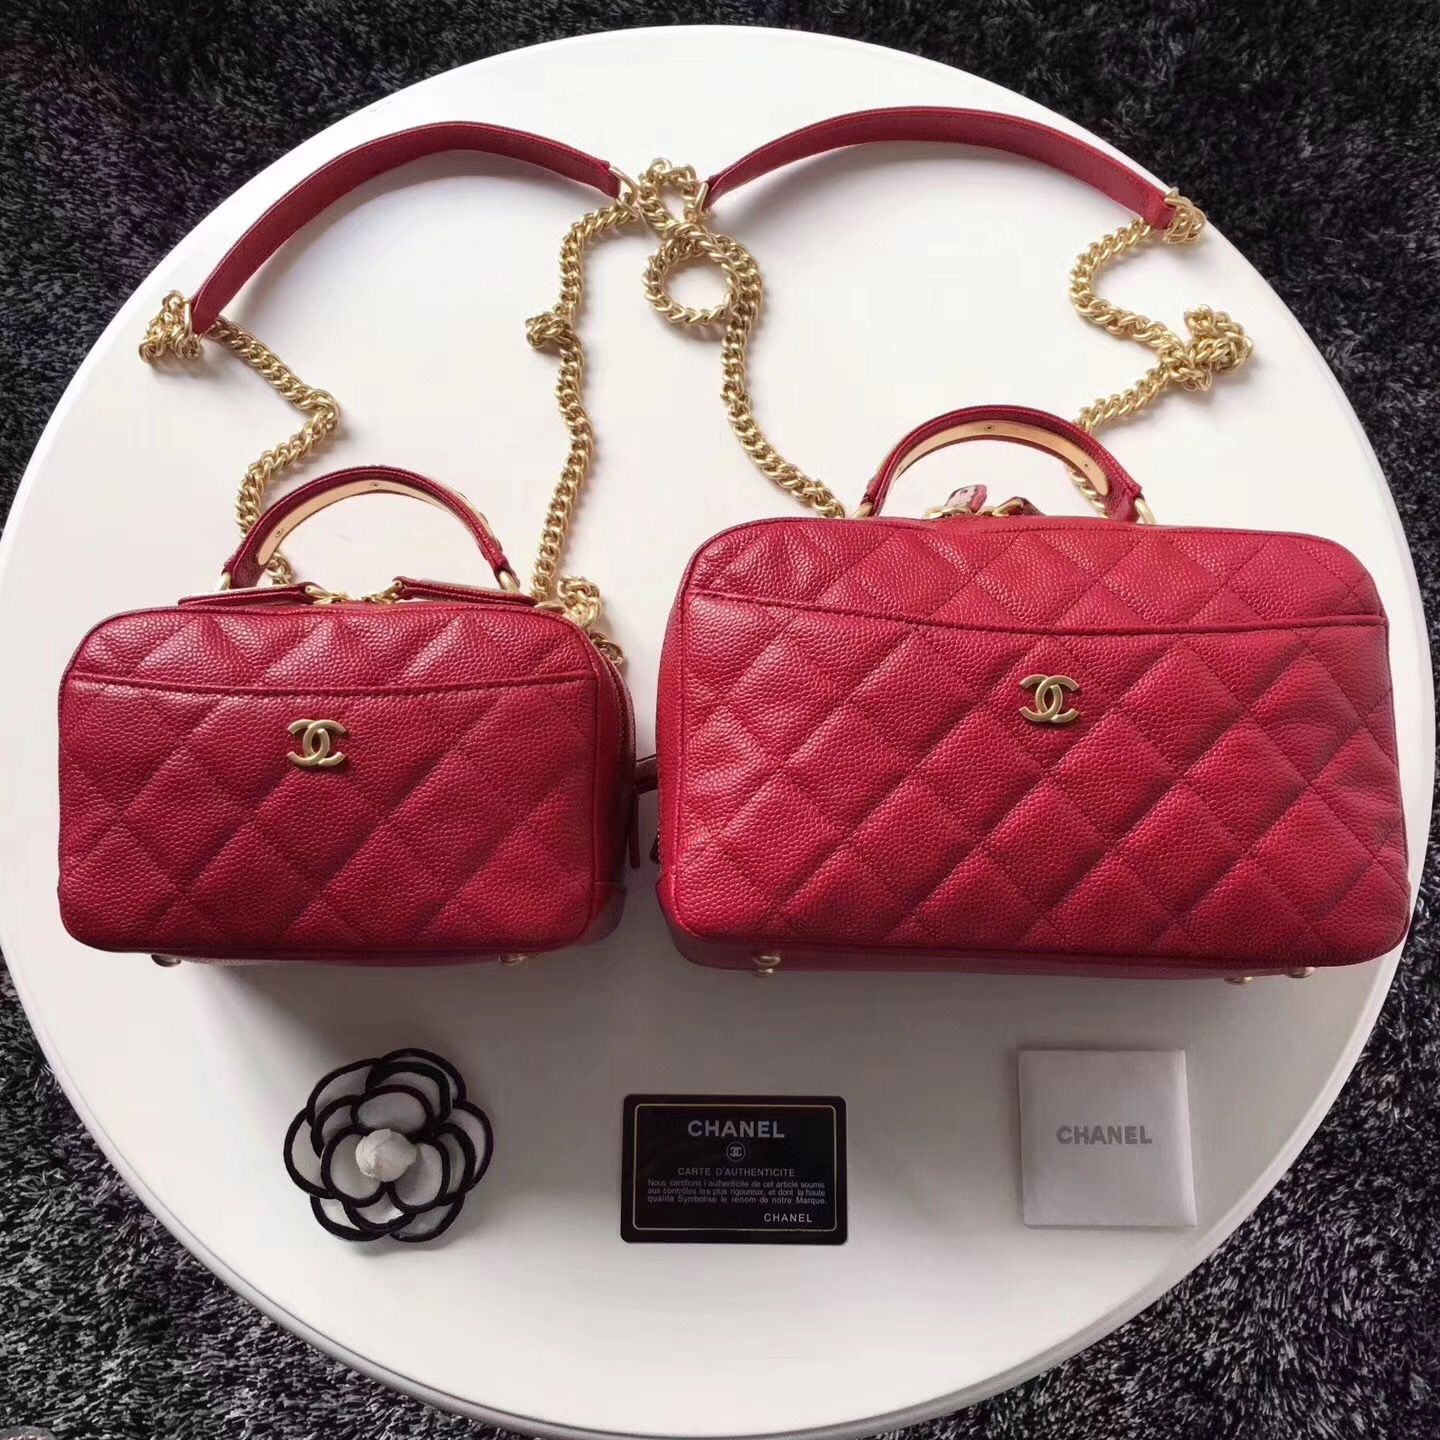 Chanel woman sling bag double zippers caviar original leather version 240  275 353315fa84